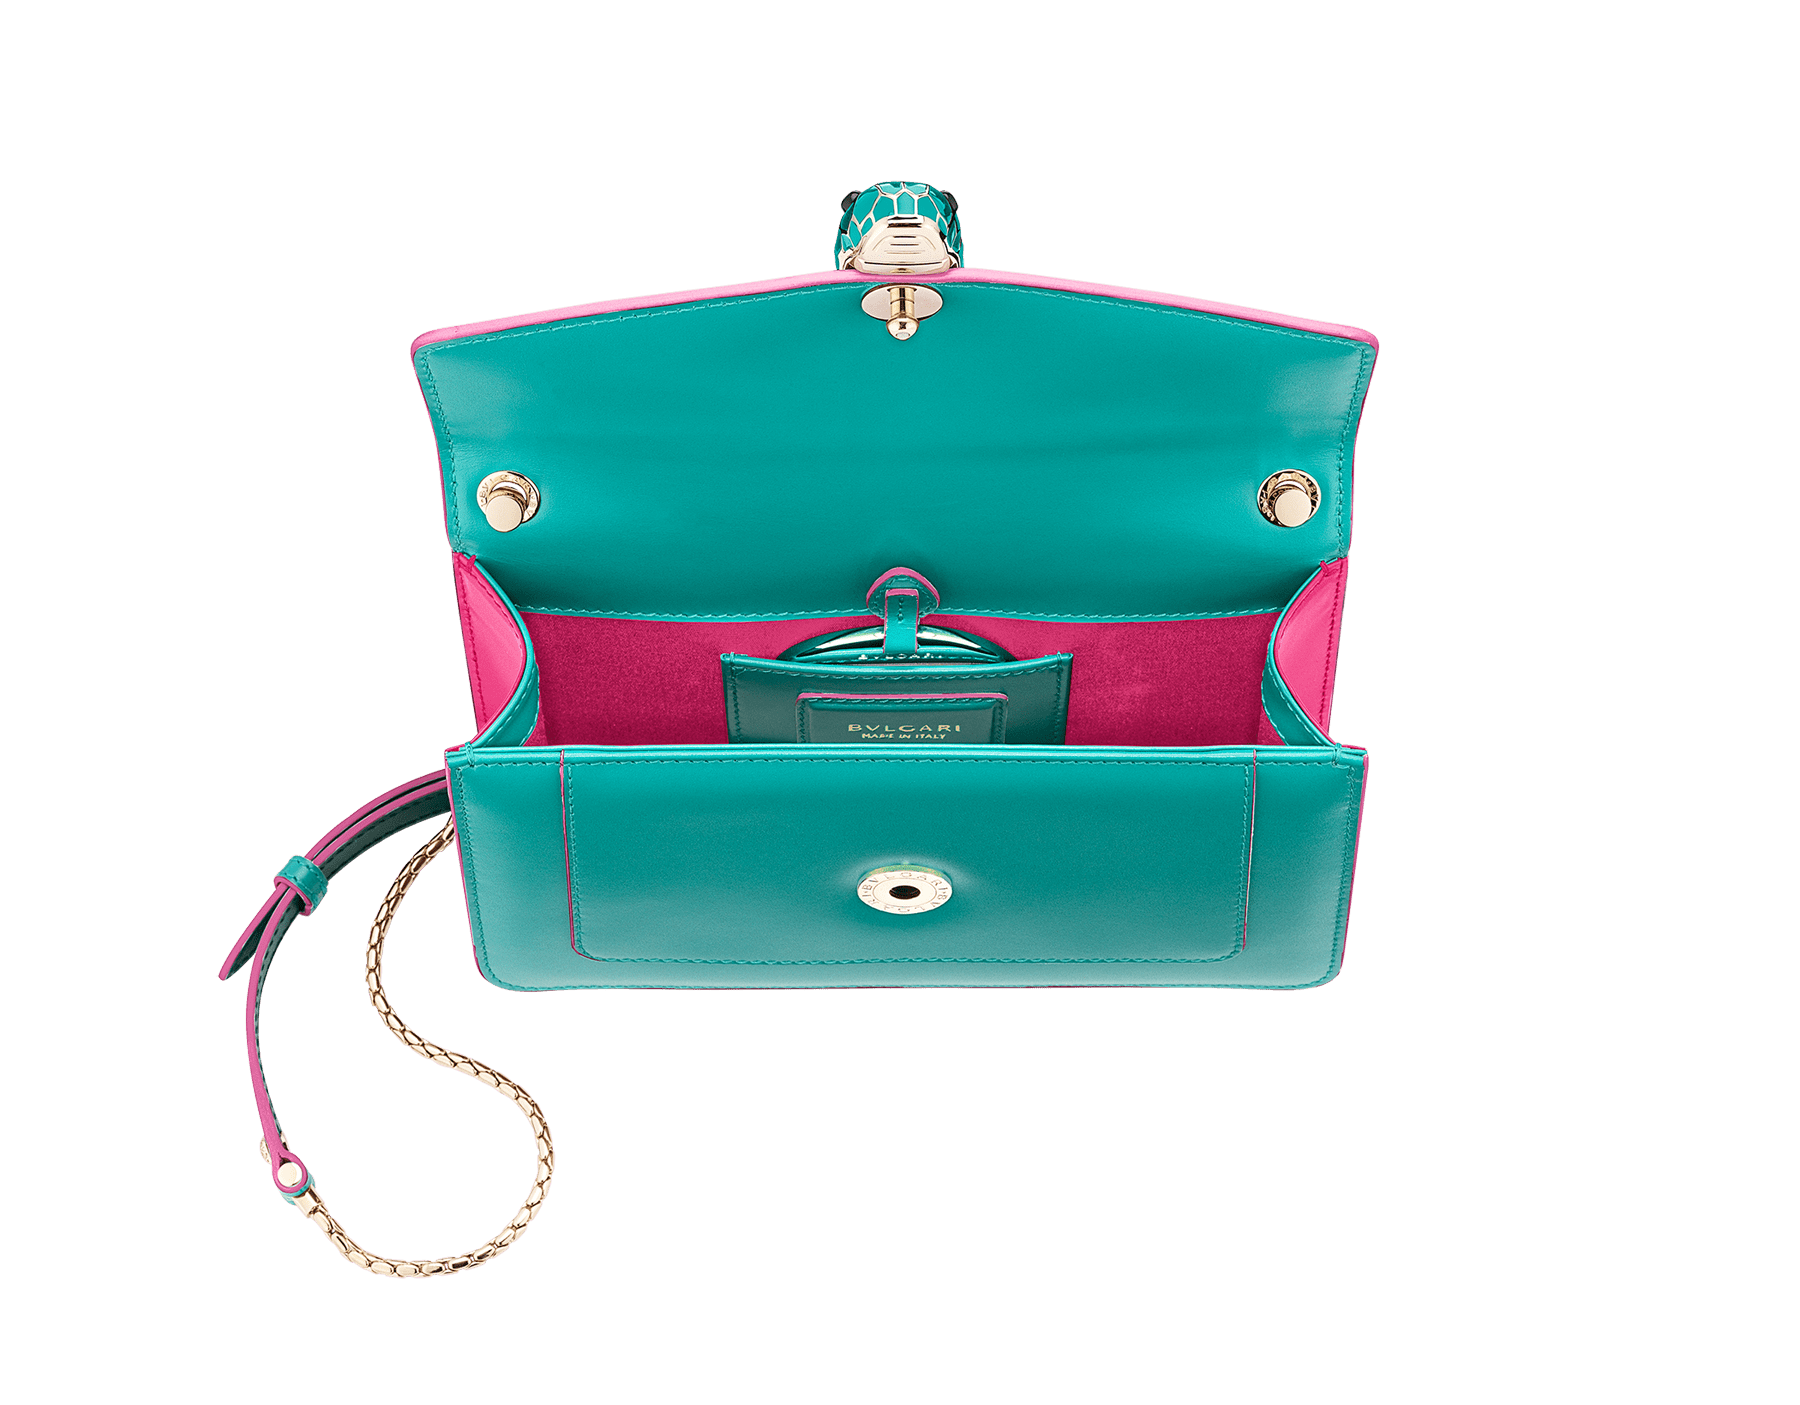 """Serpenti Forever"" crossbody bag in arctic jade calf leather body and flash amethyst calf leather sides. Iconic snakehead closure in light gold plated brass enriched with arctic jade and flash amethyst enamel and black onyx eyes. 289543 image 4"